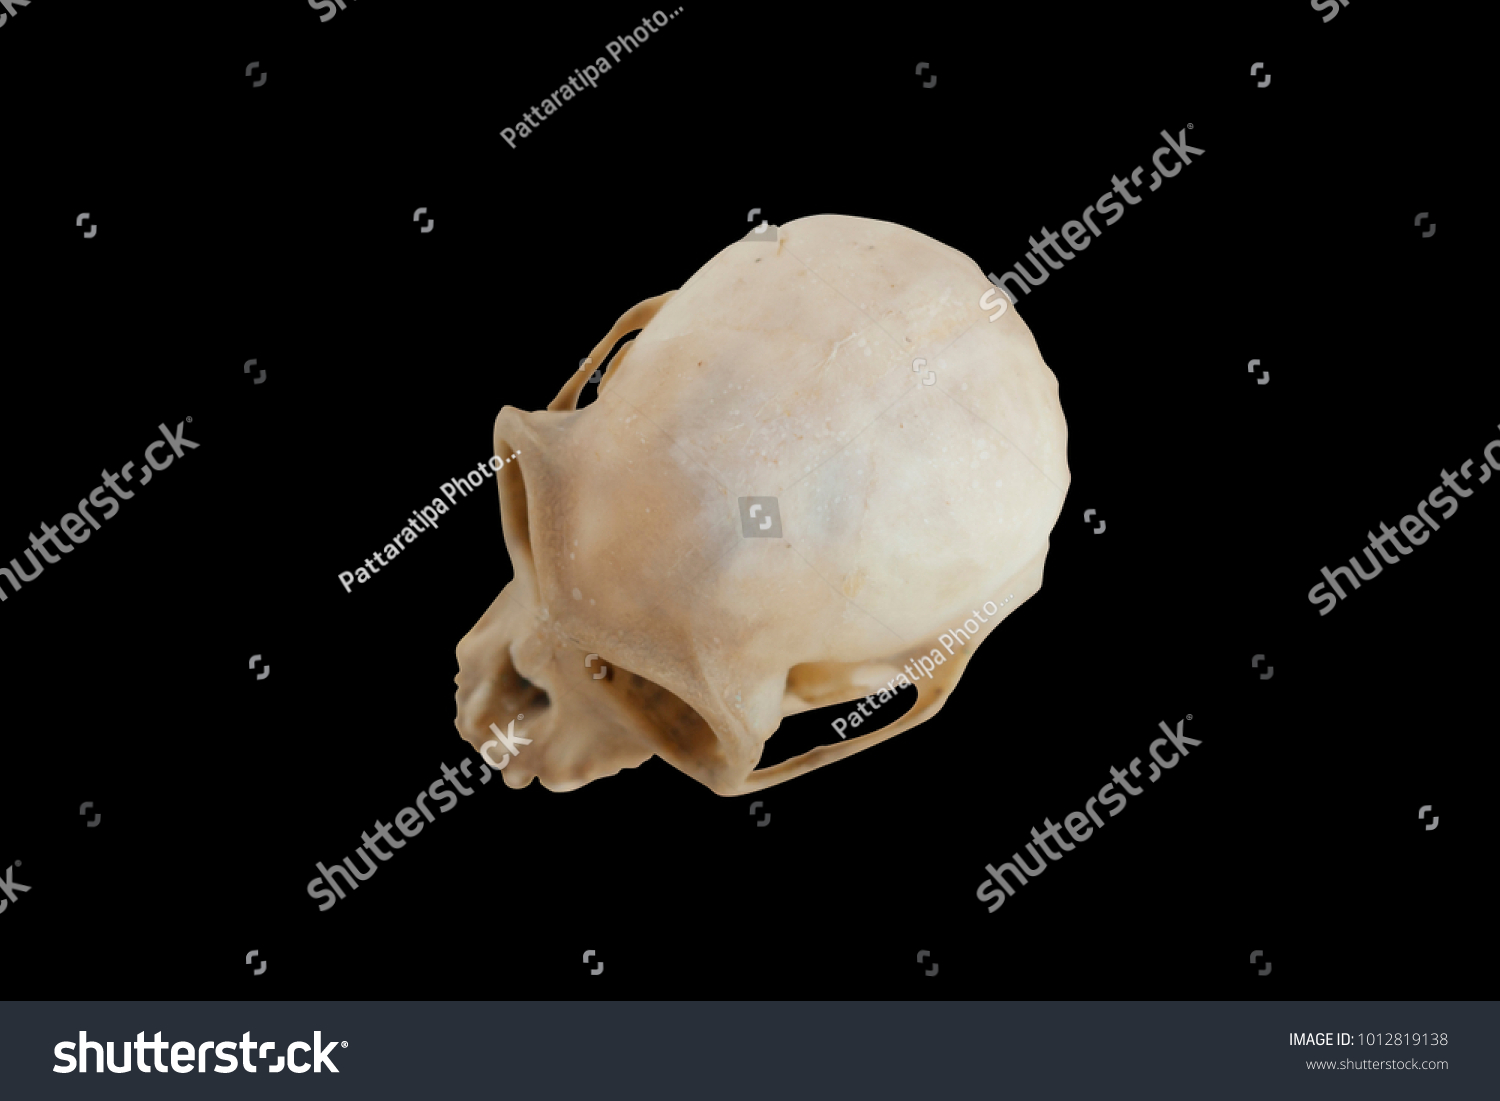 hight resolution of animal skull for study and compos design top view monkey skull